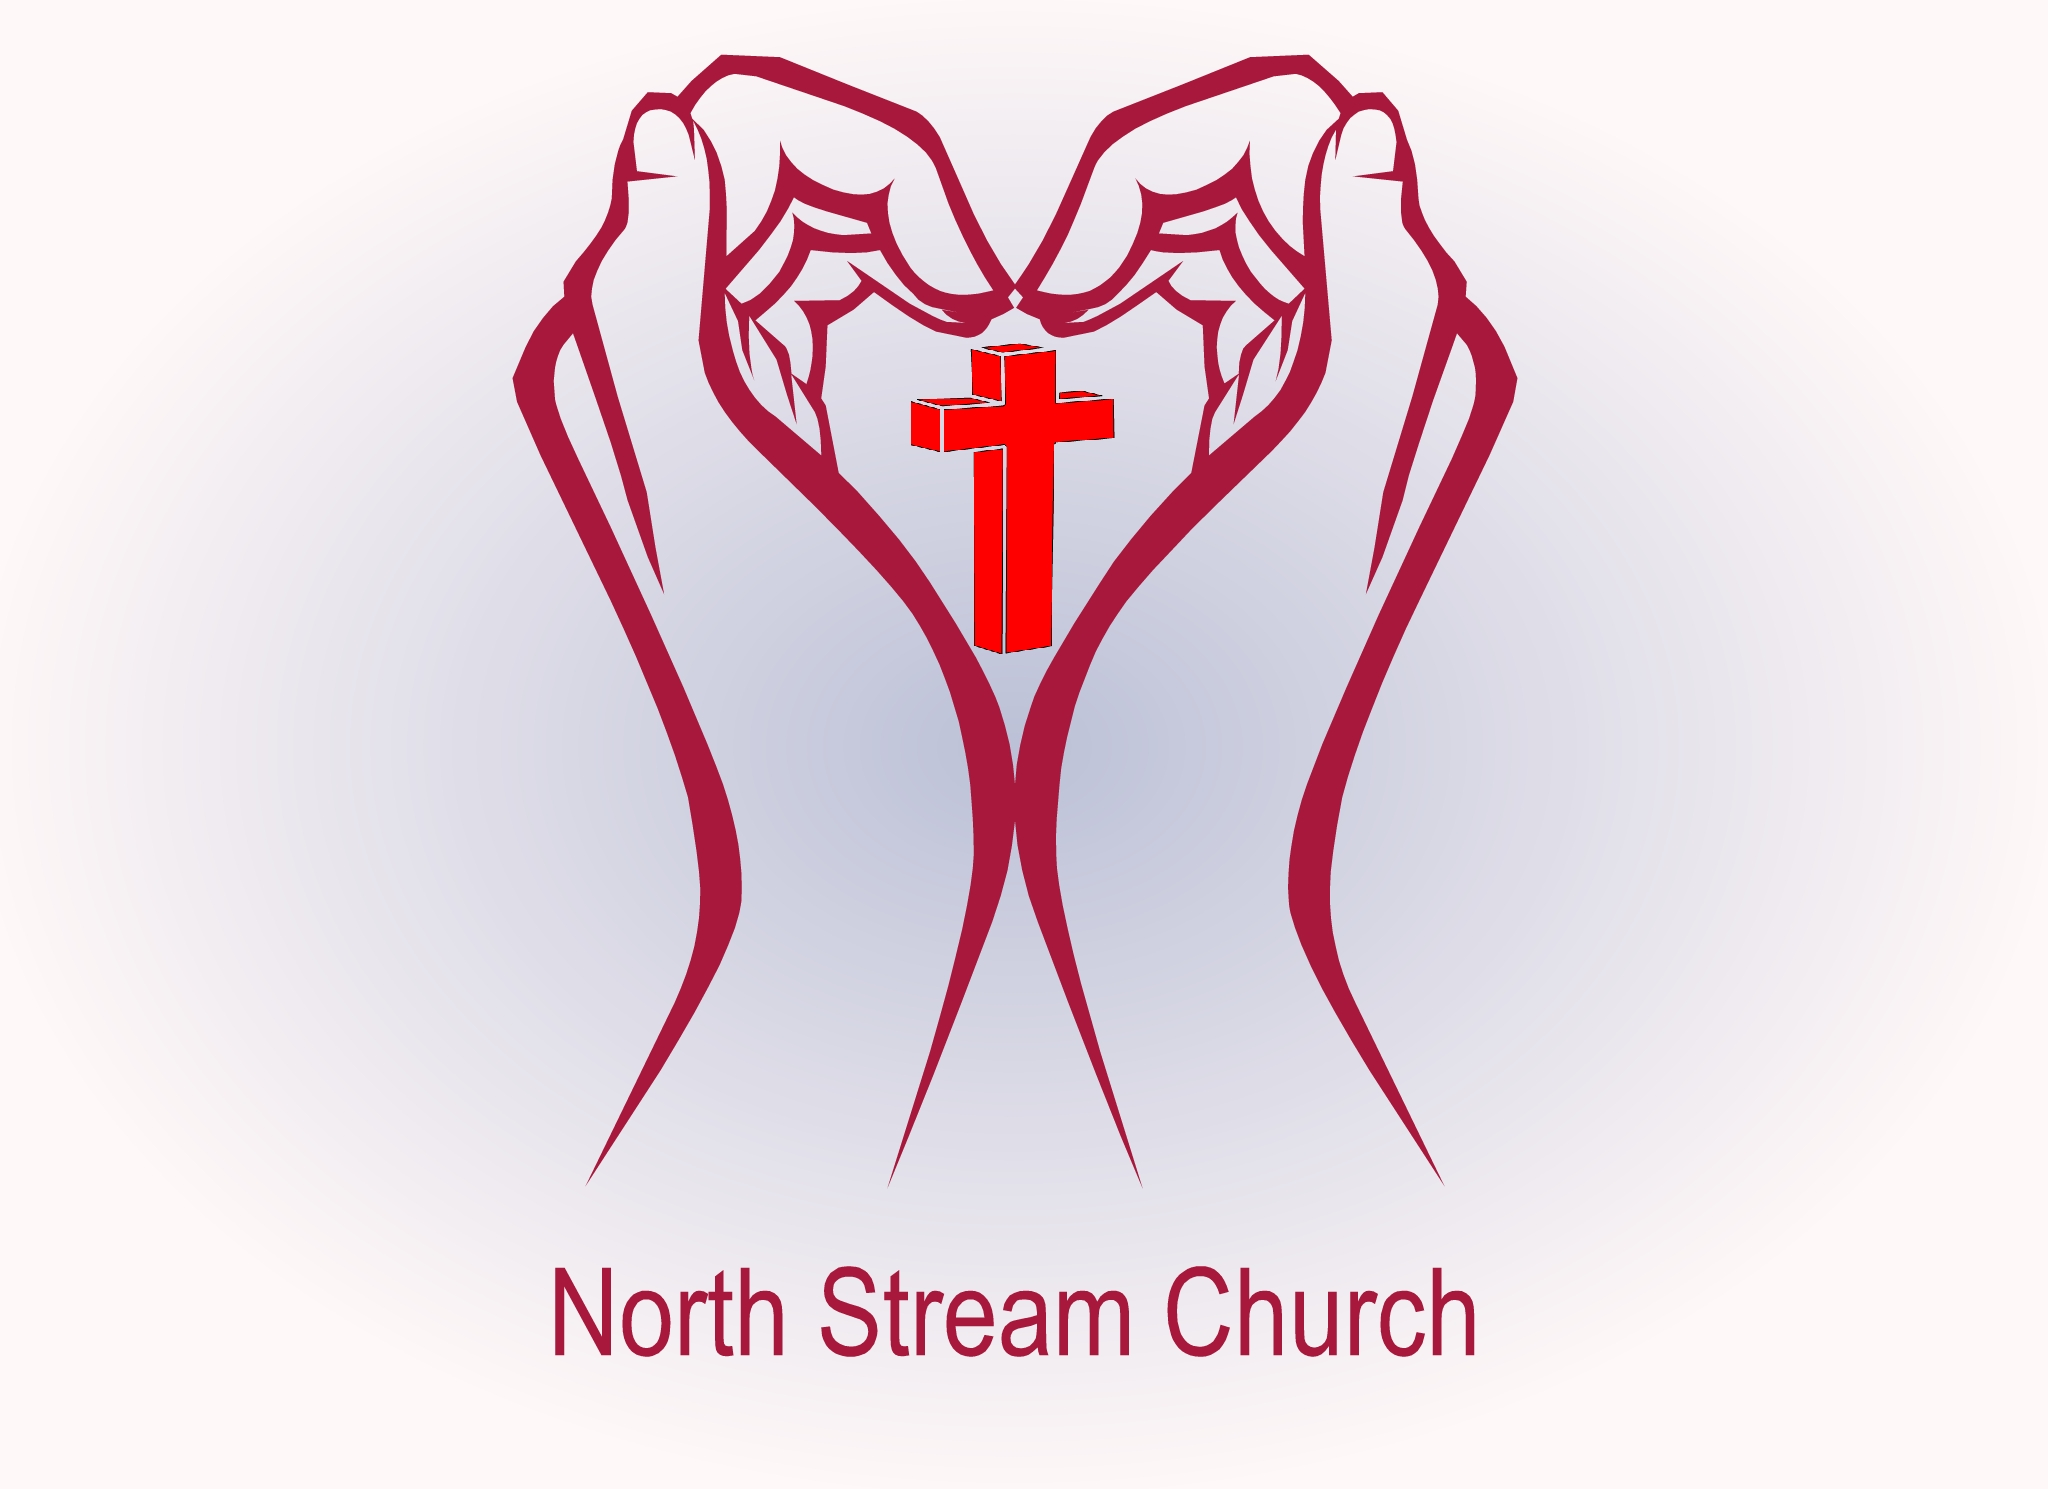 Logo Design by Marco Paulo Jamero - Entry No. 33 in the Logo Design Contest Creative Logo Design for North Stream Church.